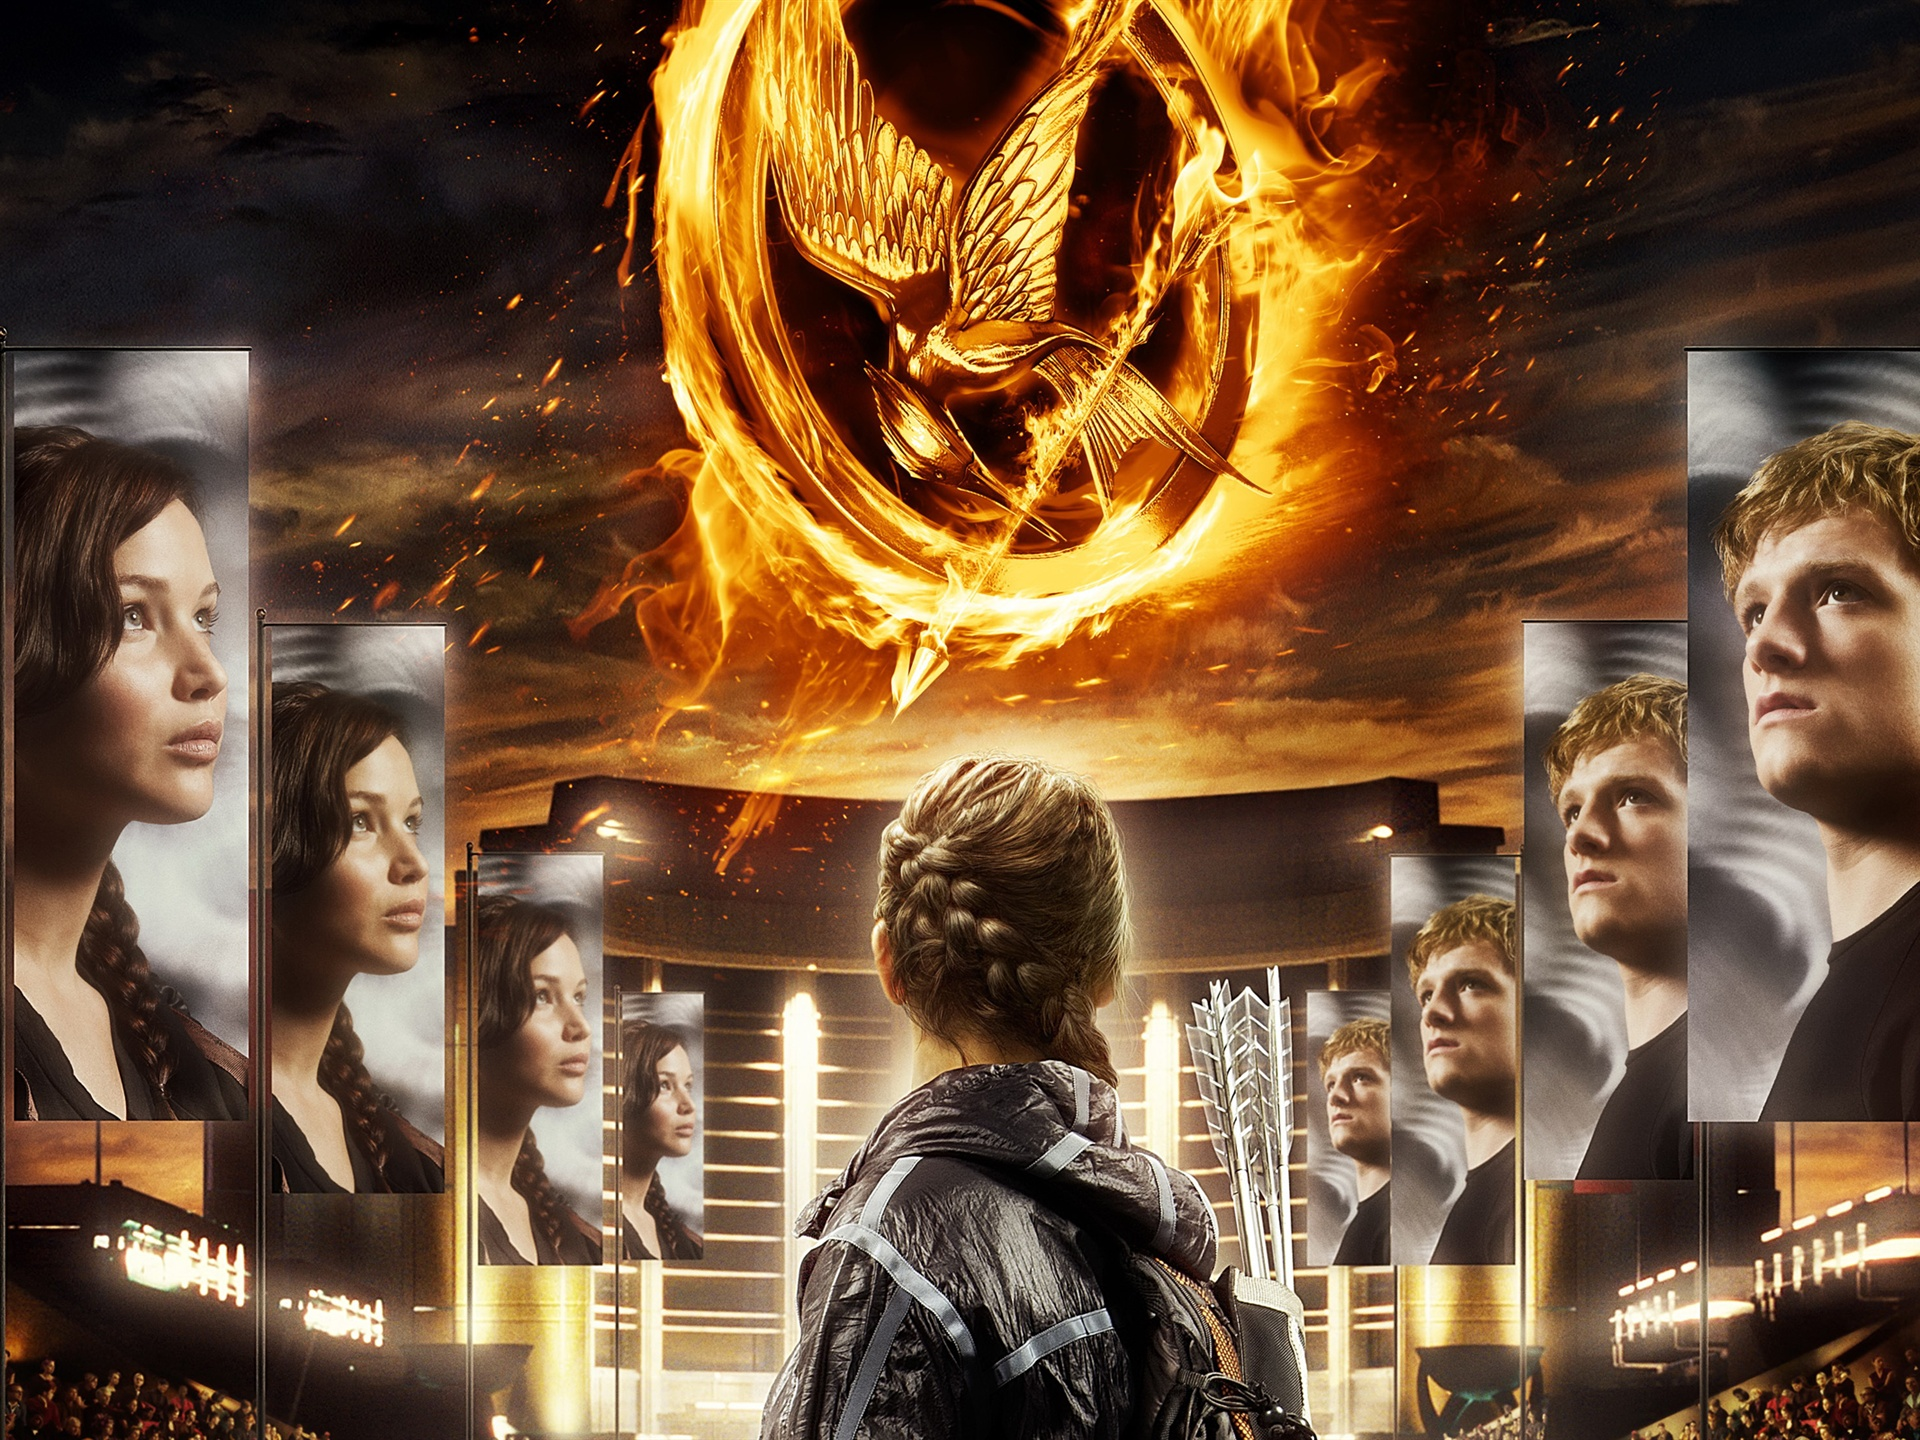 The Hunger Games 2012 wallpaper - 1920x1440